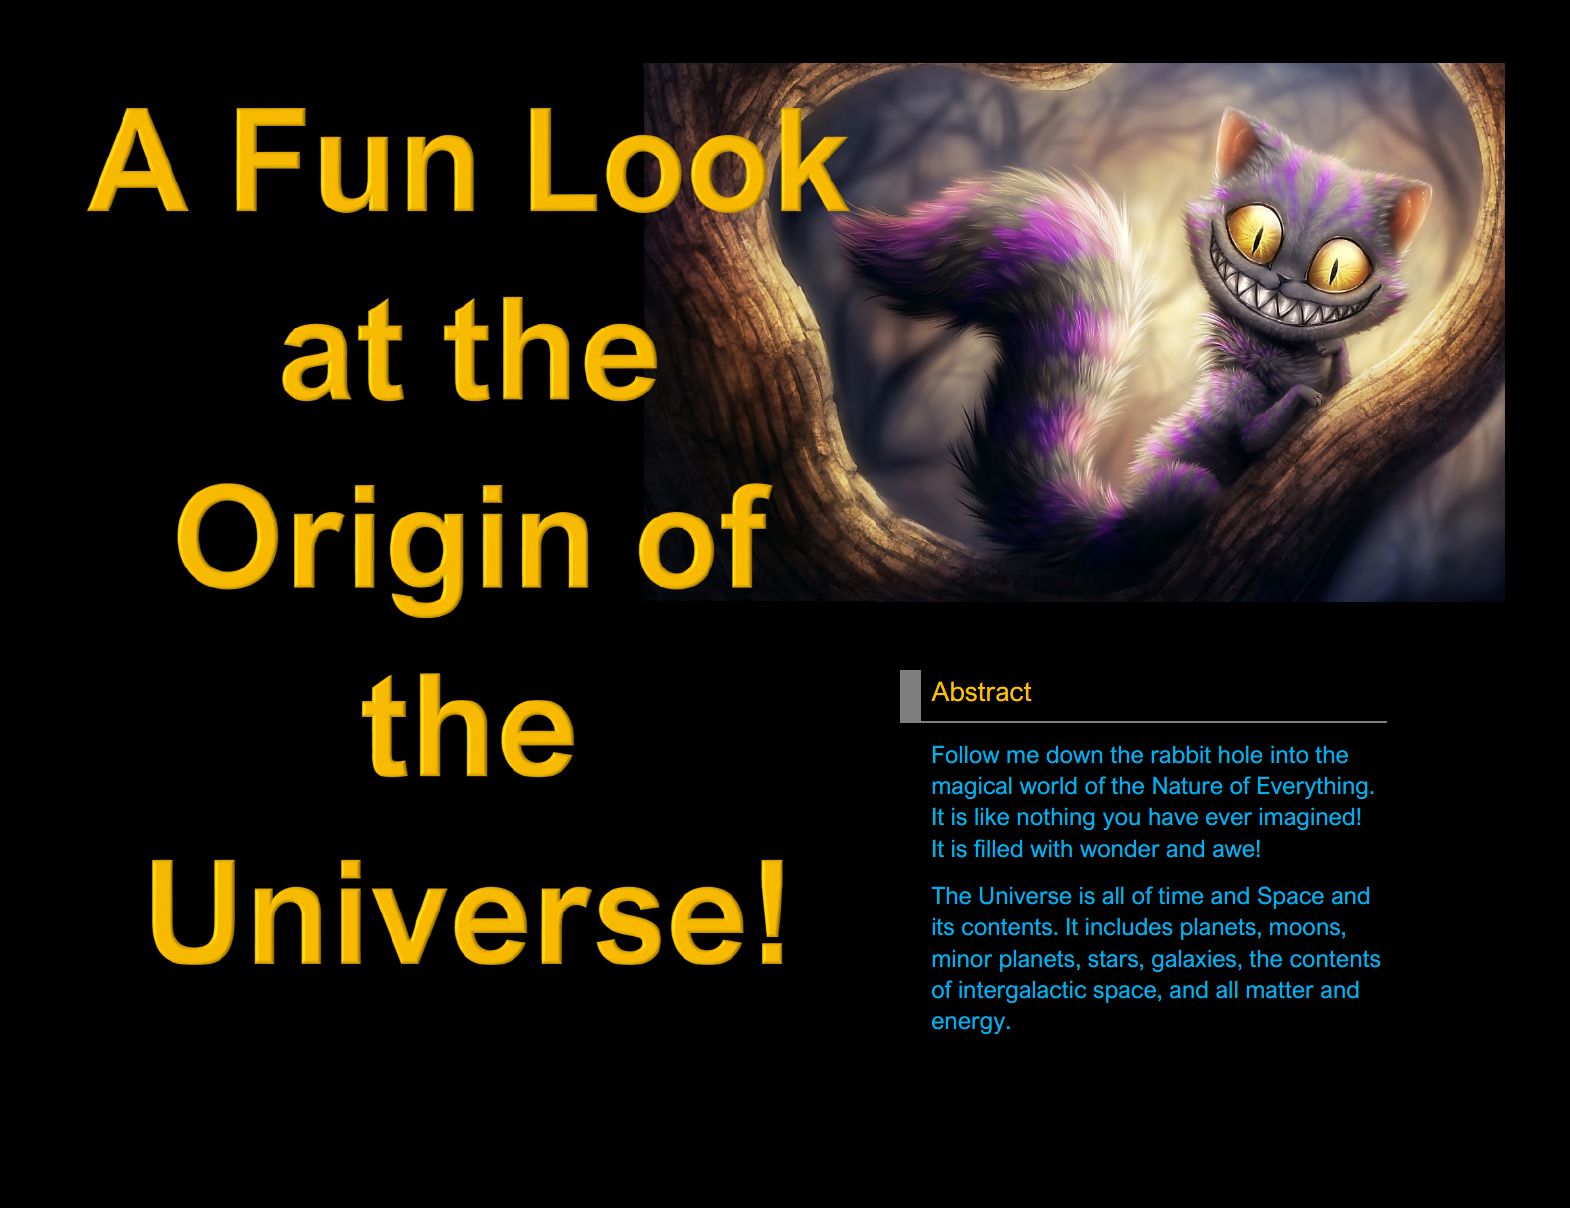 A Fun Look at the Origin of the Universe!